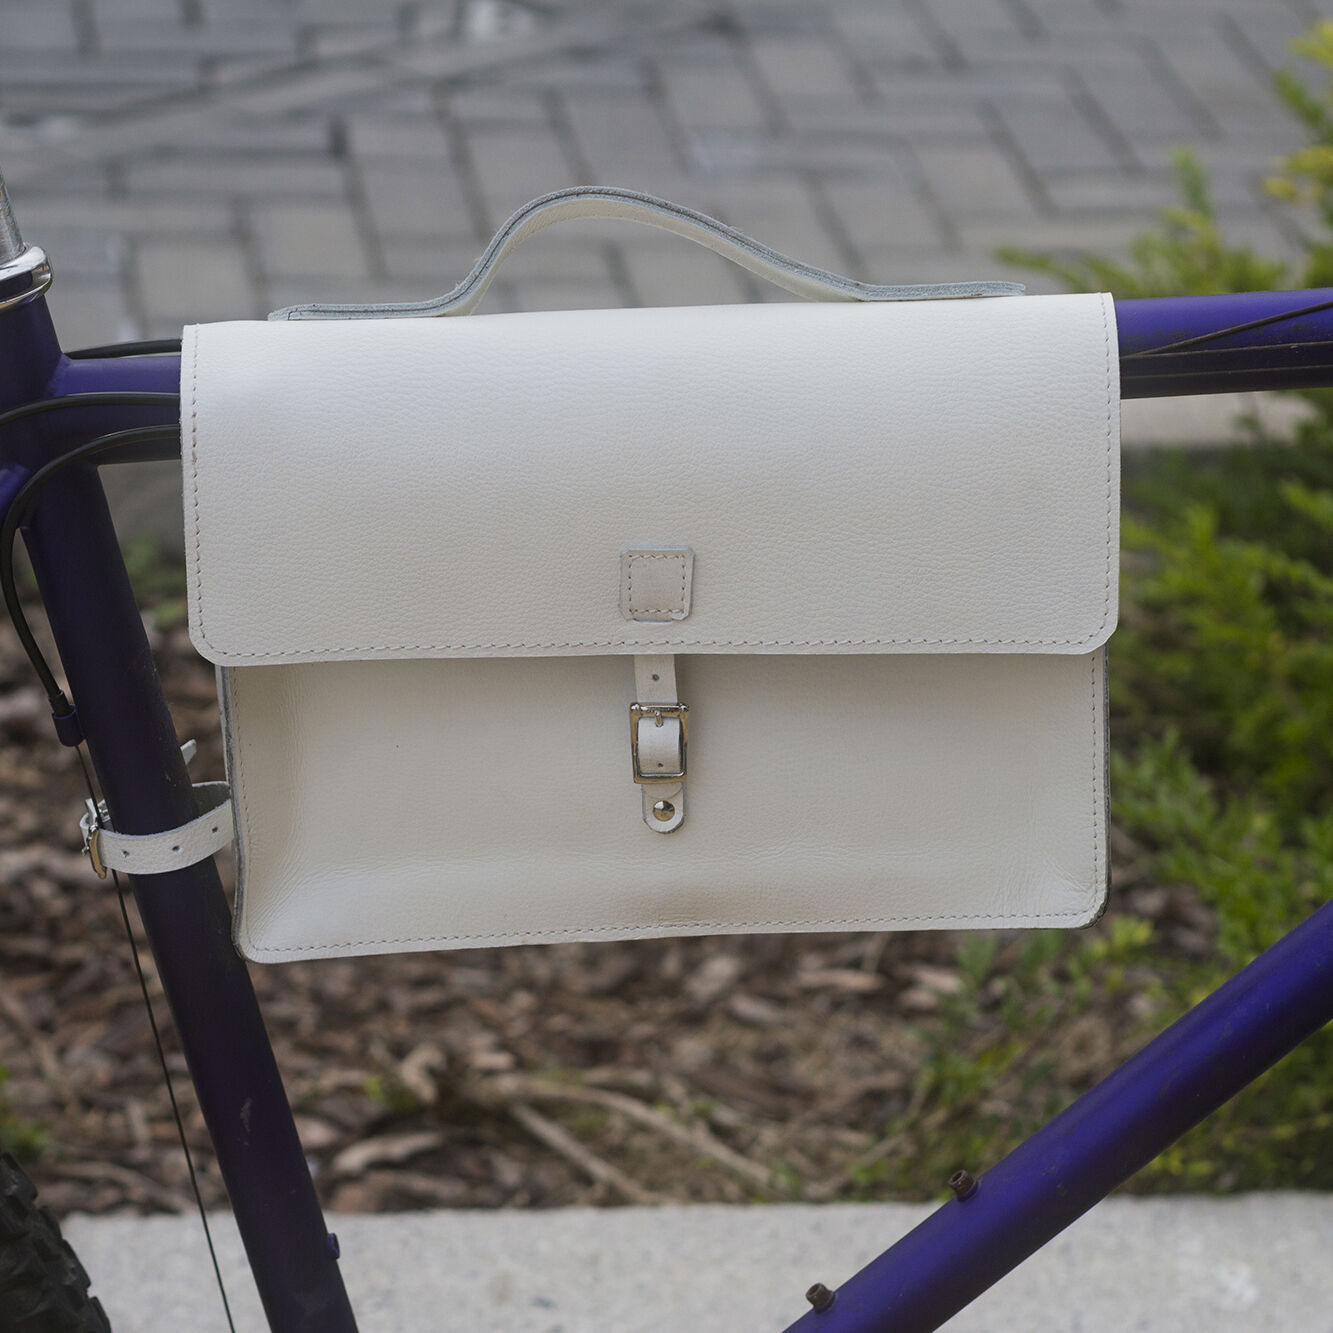 Bicycle Frame Satchel Bag Handcrafted Natural Leather WHITE 11.8 x8.1 x2.2